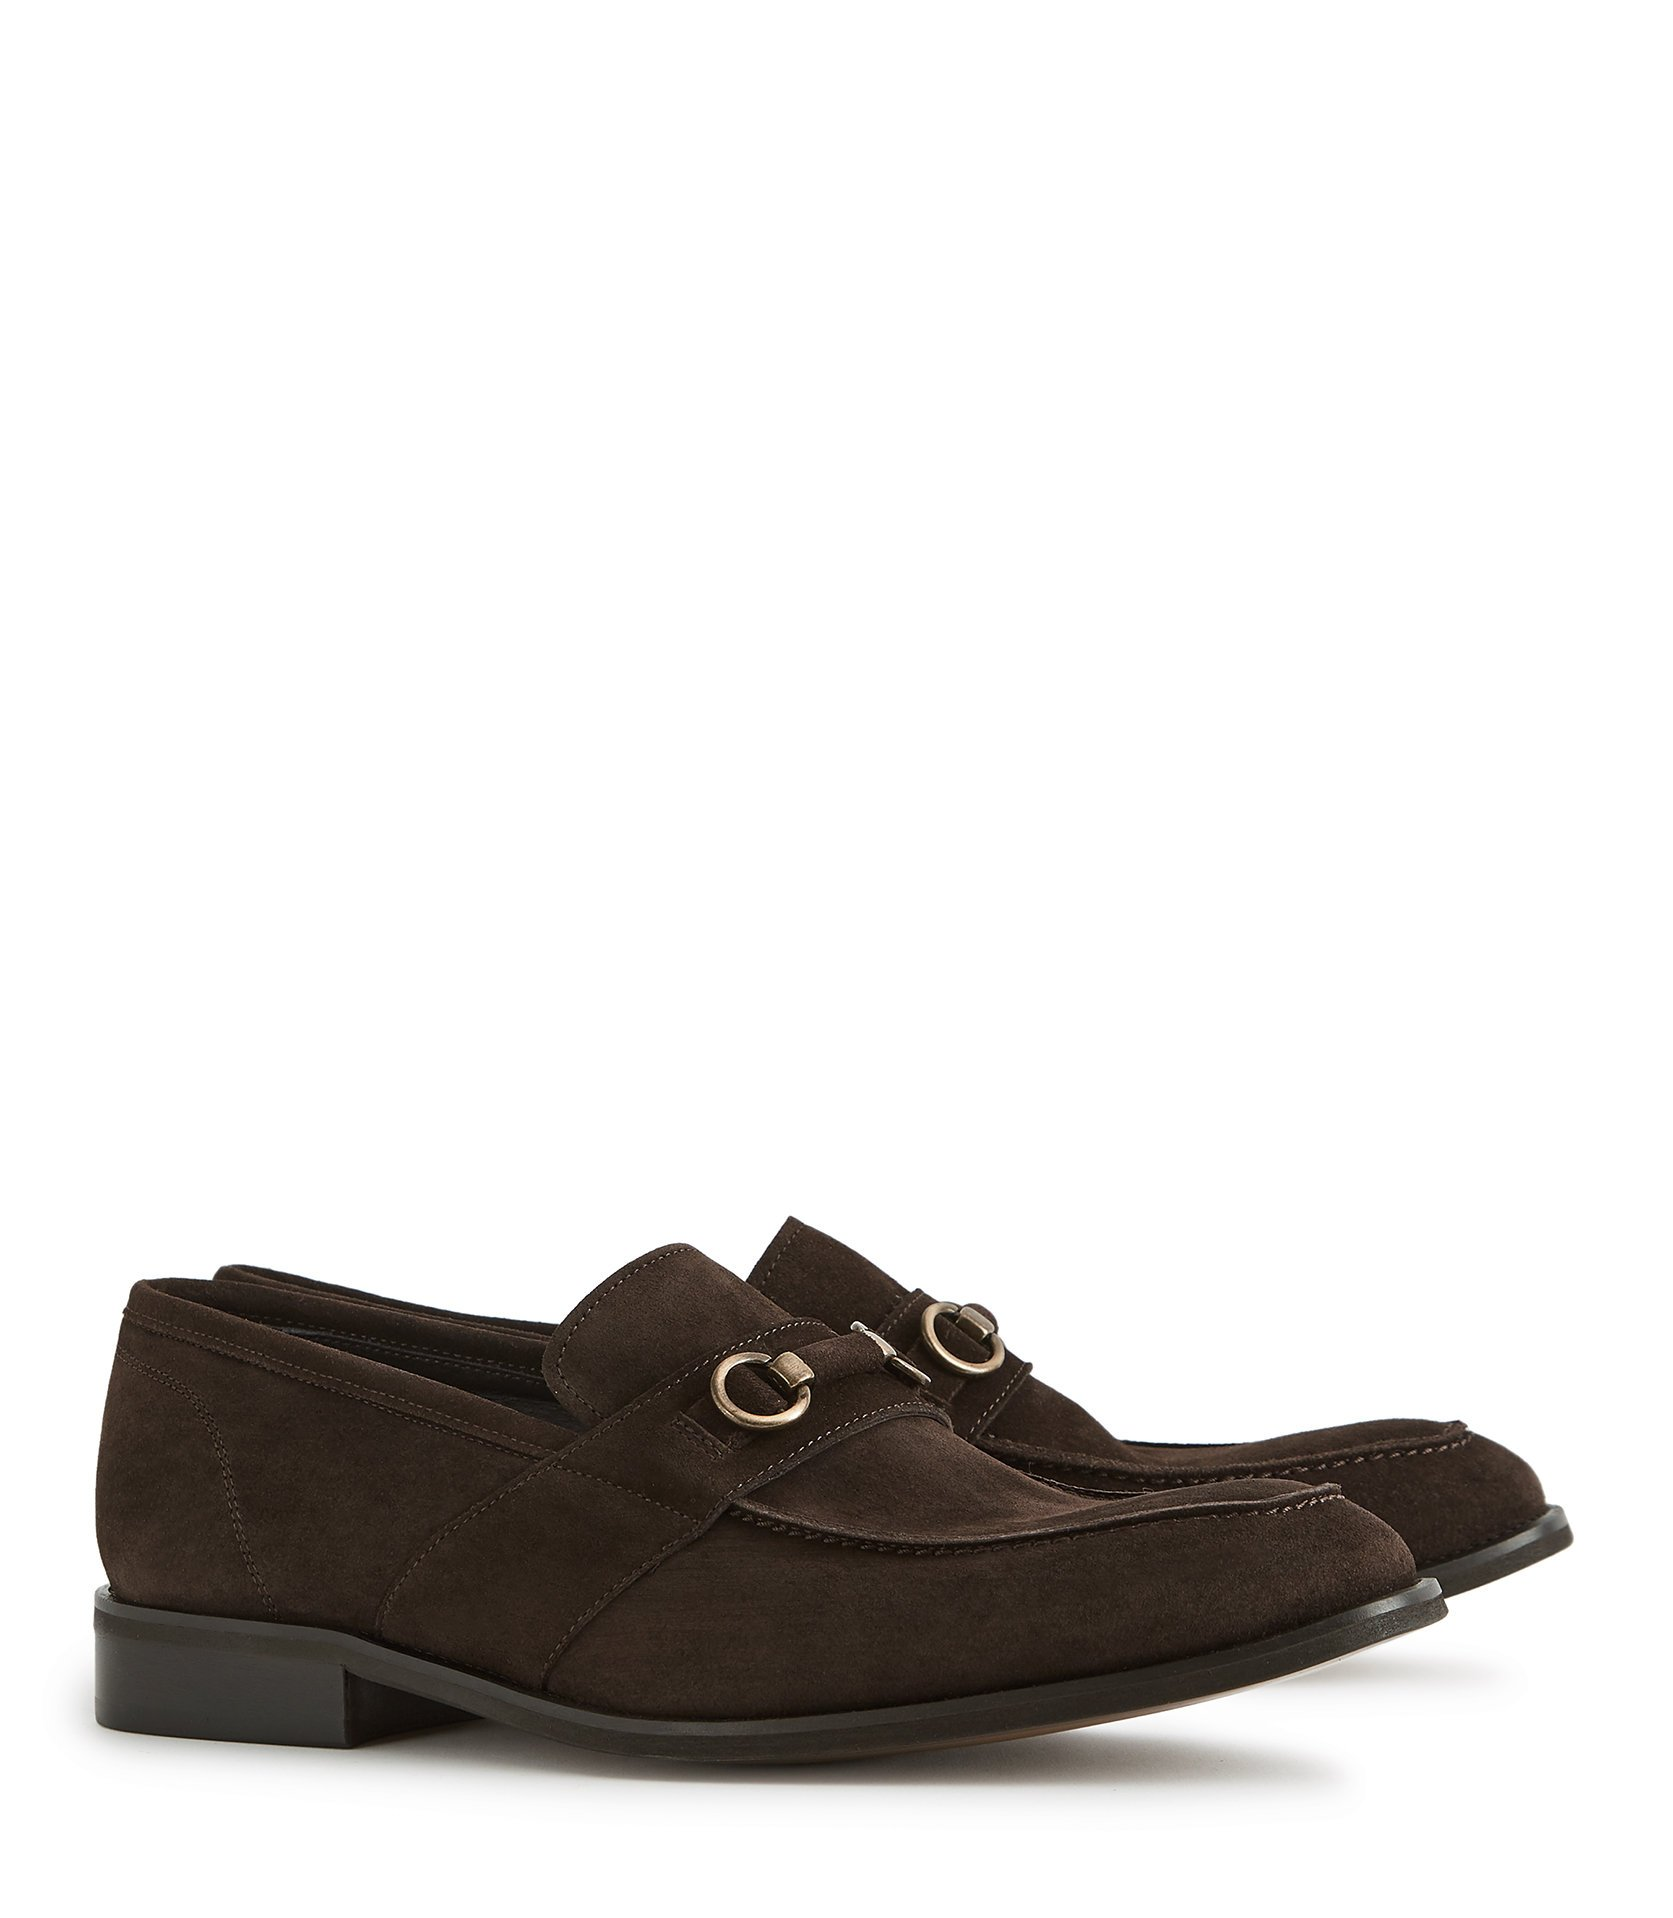 REISS Brown Tan Suede Loafers